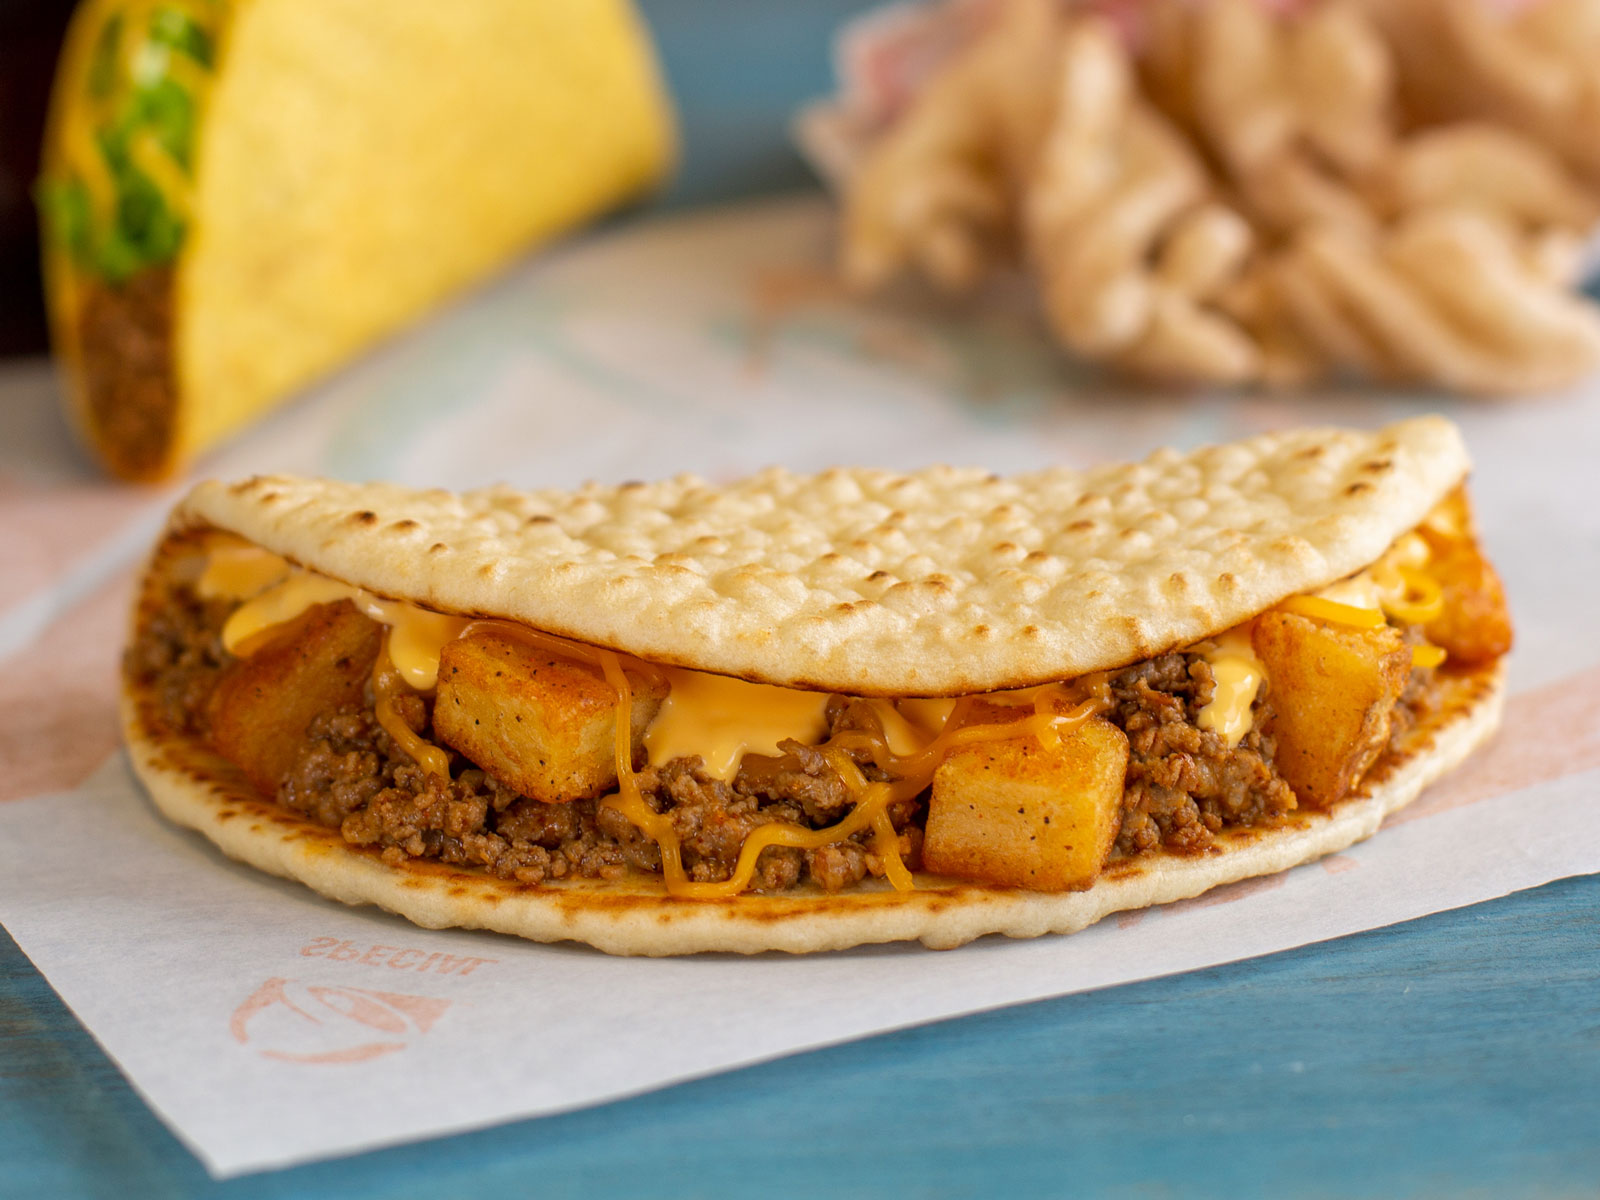 Taco Bell Ends the Year with Three Test Items in Three Cities